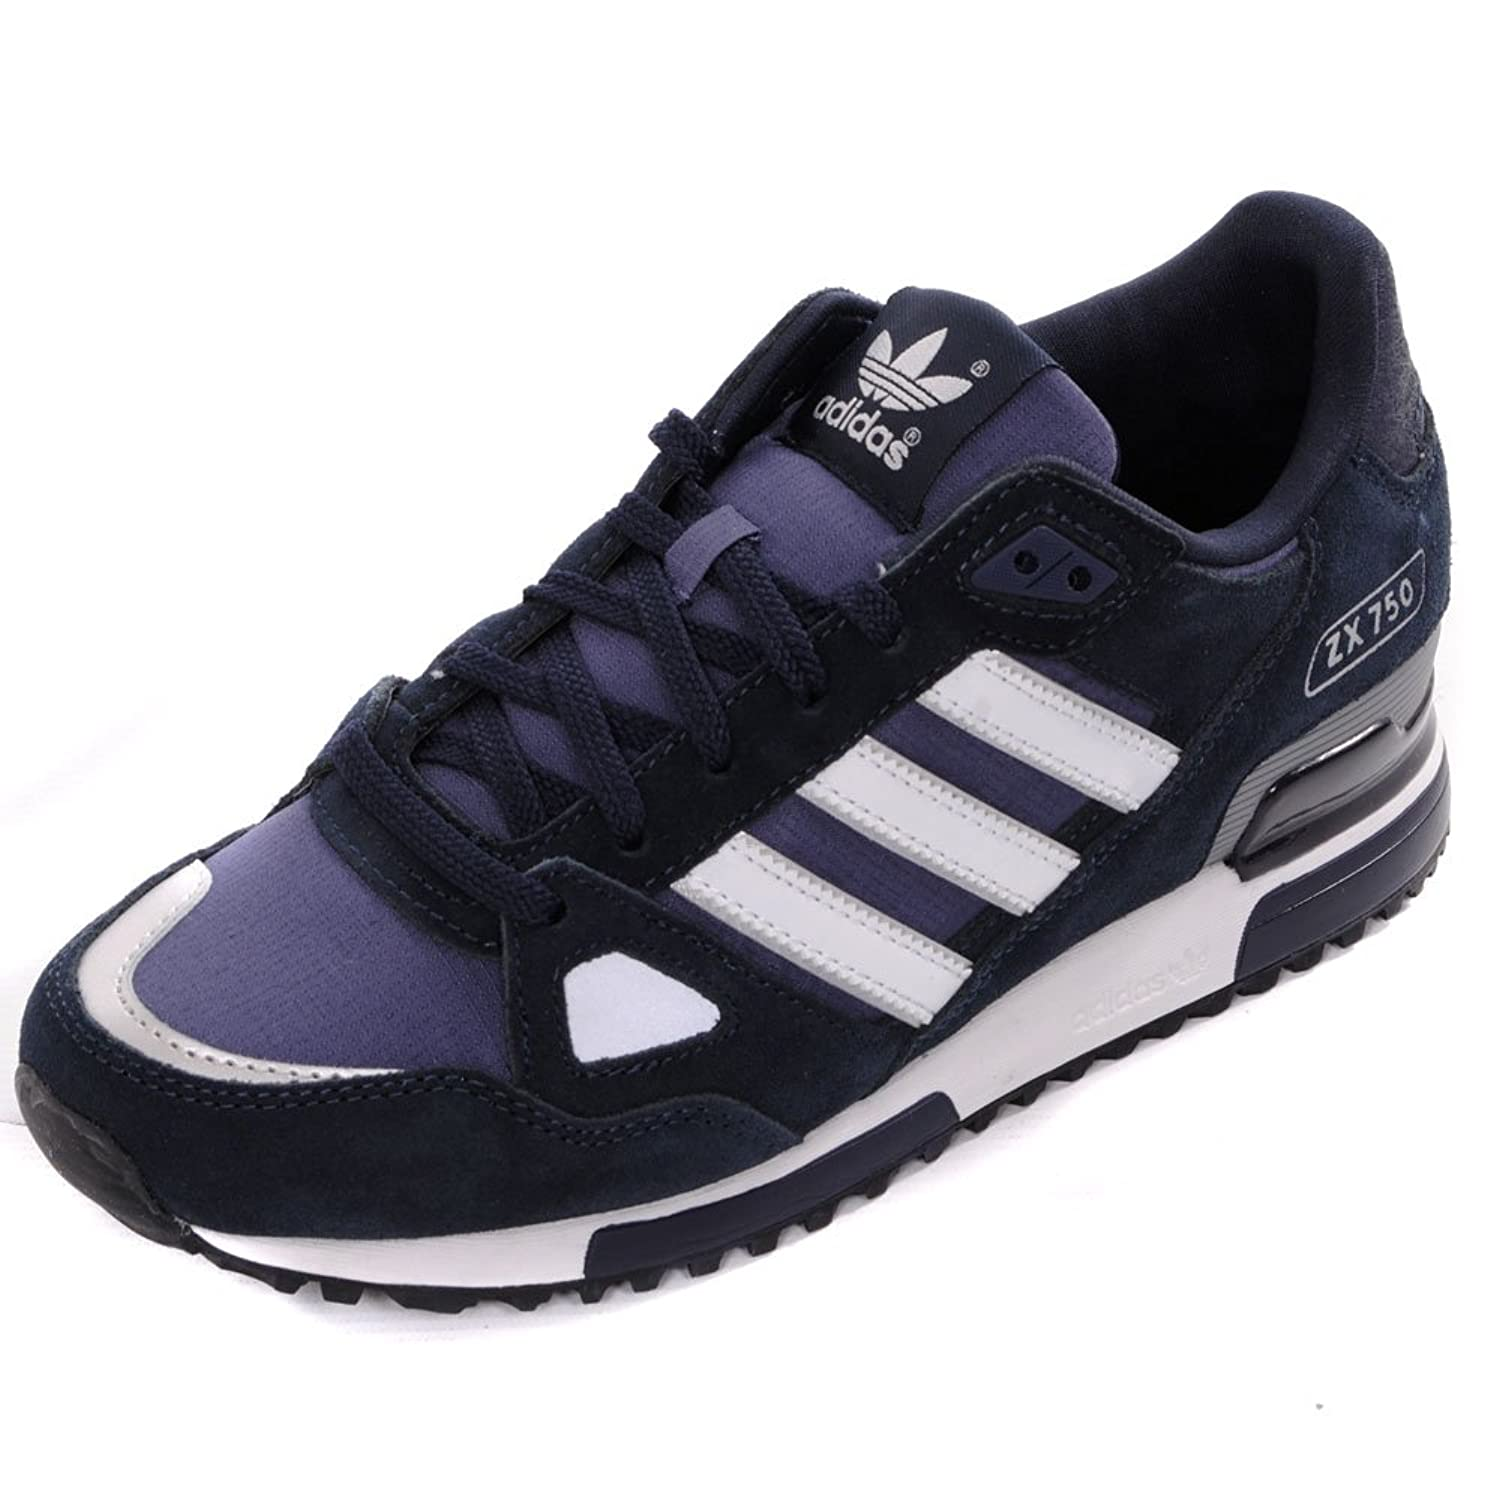 2d93510ce good adidas flux price outlet 01c56 833f3  australia adidas originals zx 750  trainers navy white 9545e 7f125